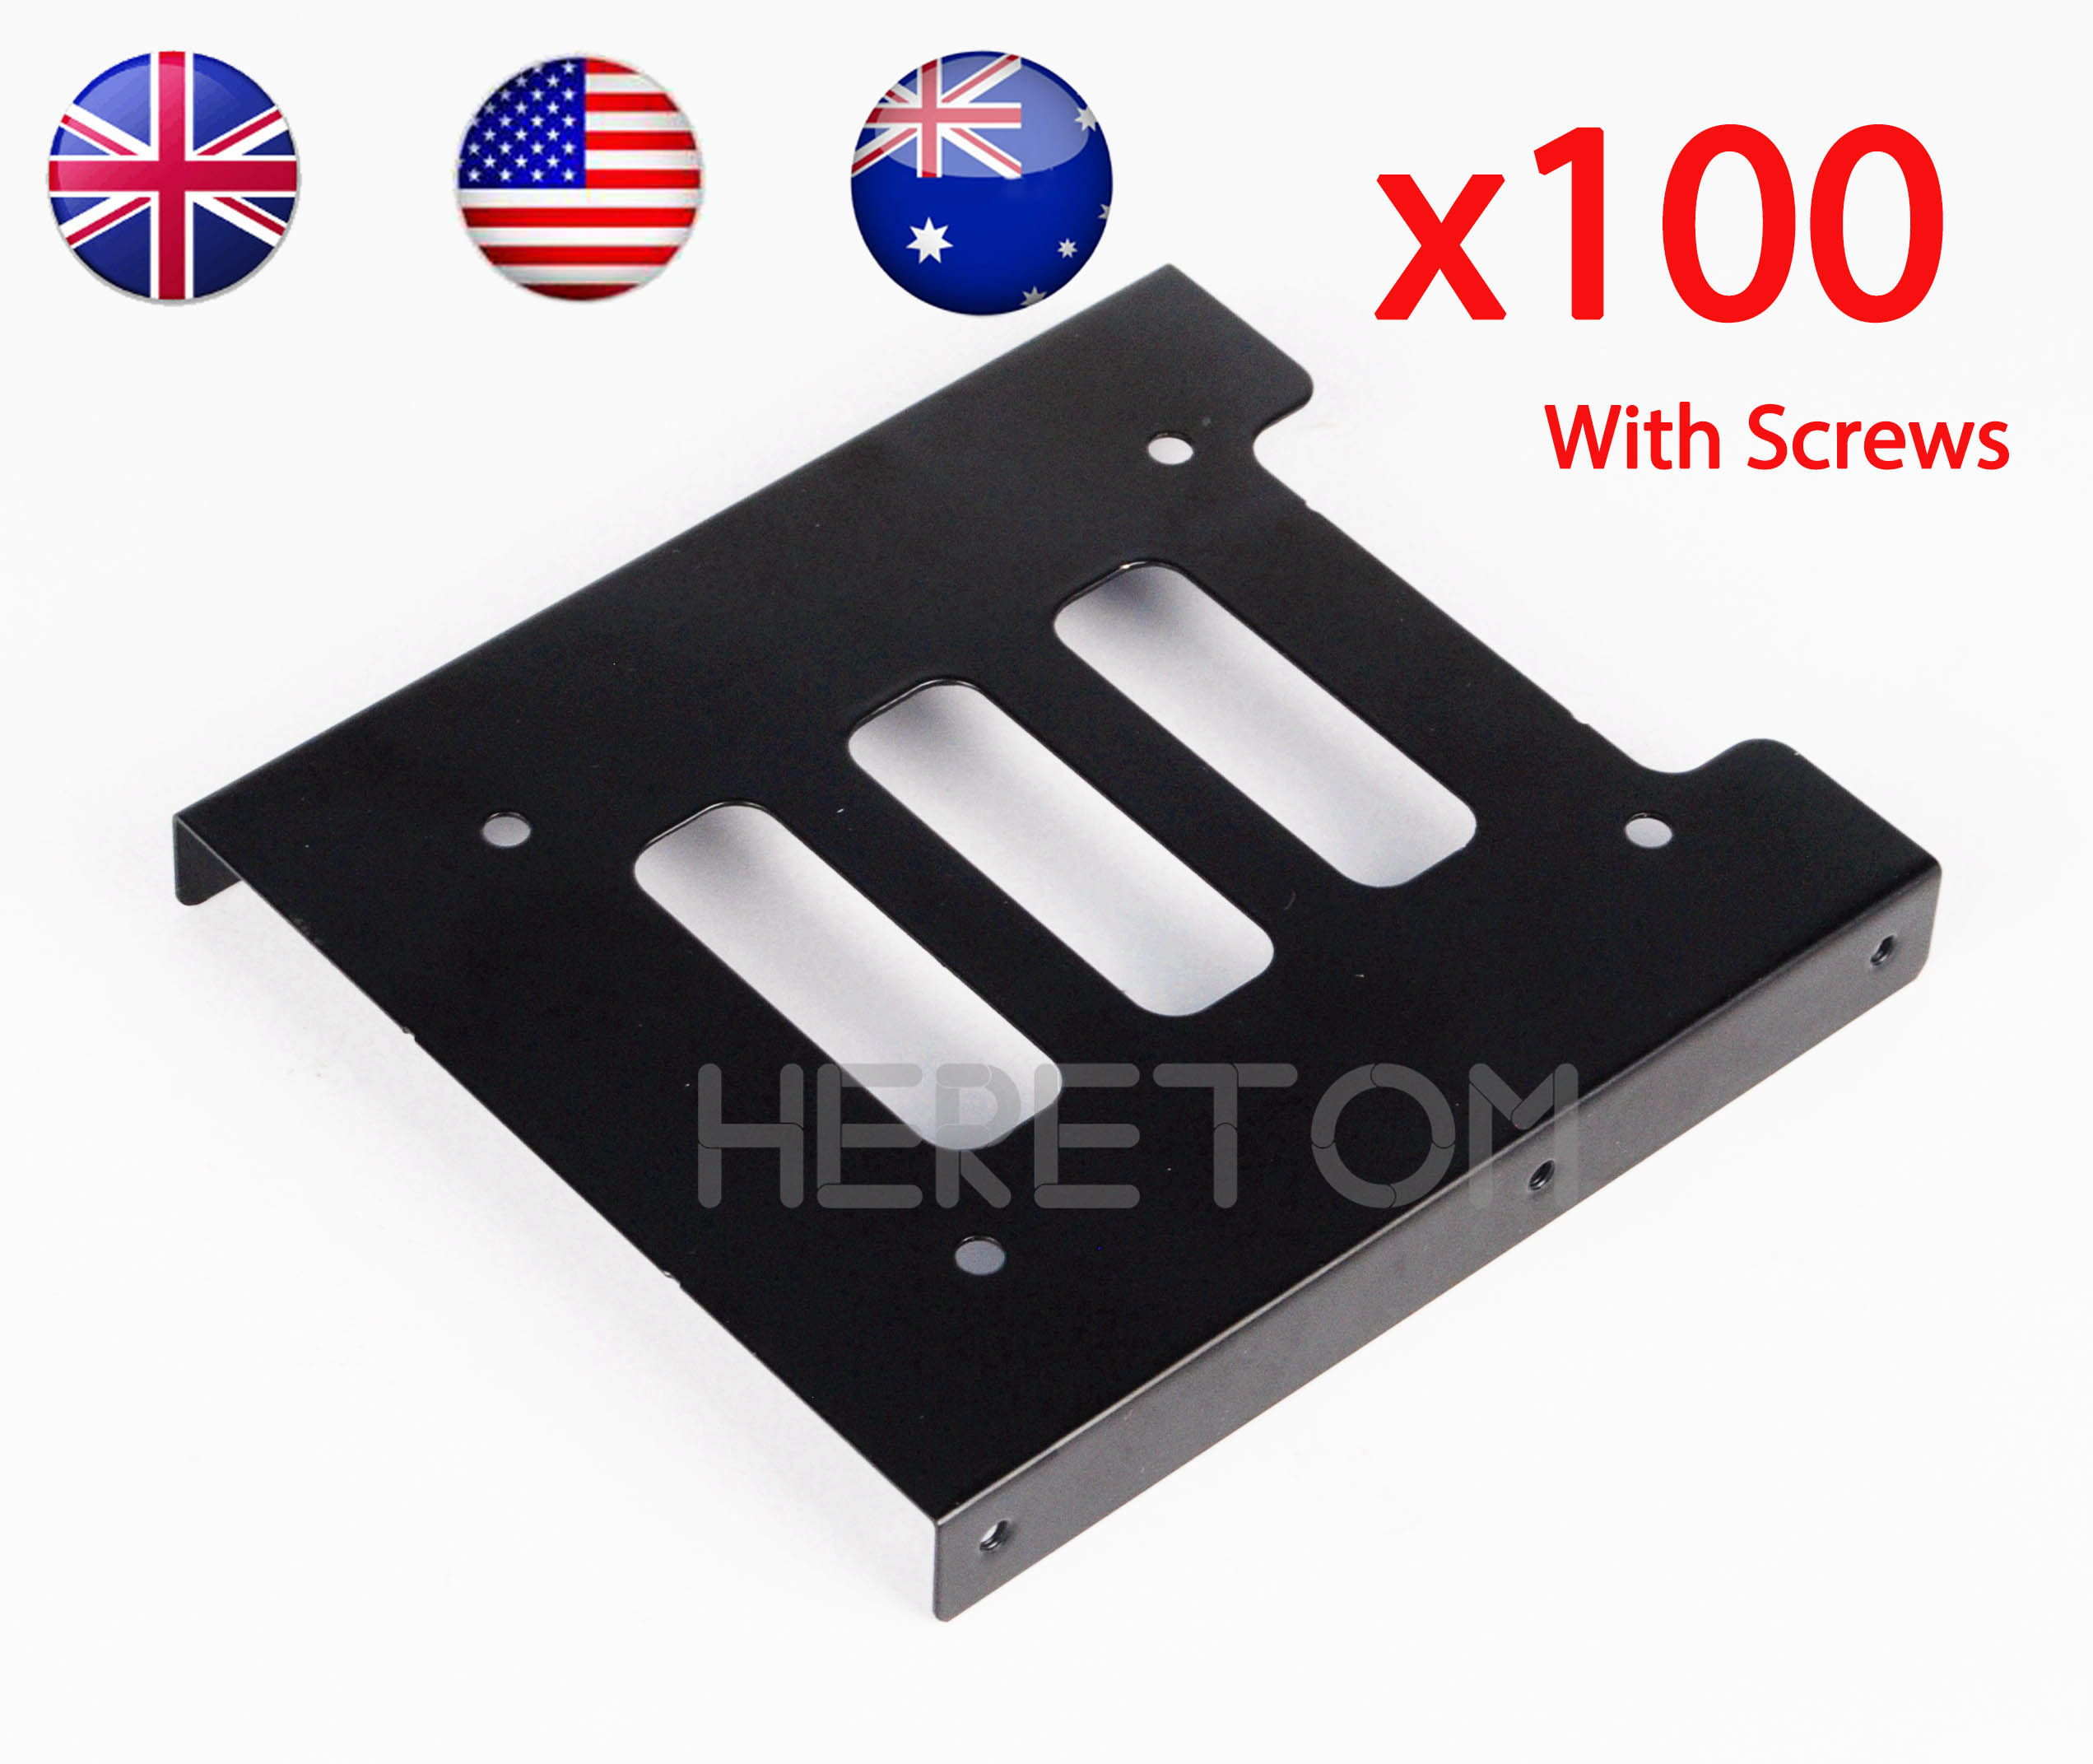 100PCS 2.5 In SSD HDD To 3.5IN Metal Mounting Adapter Bracket Dock Hard Drive Holder For PC Hard Drive Enclosure Ship@US UK AU